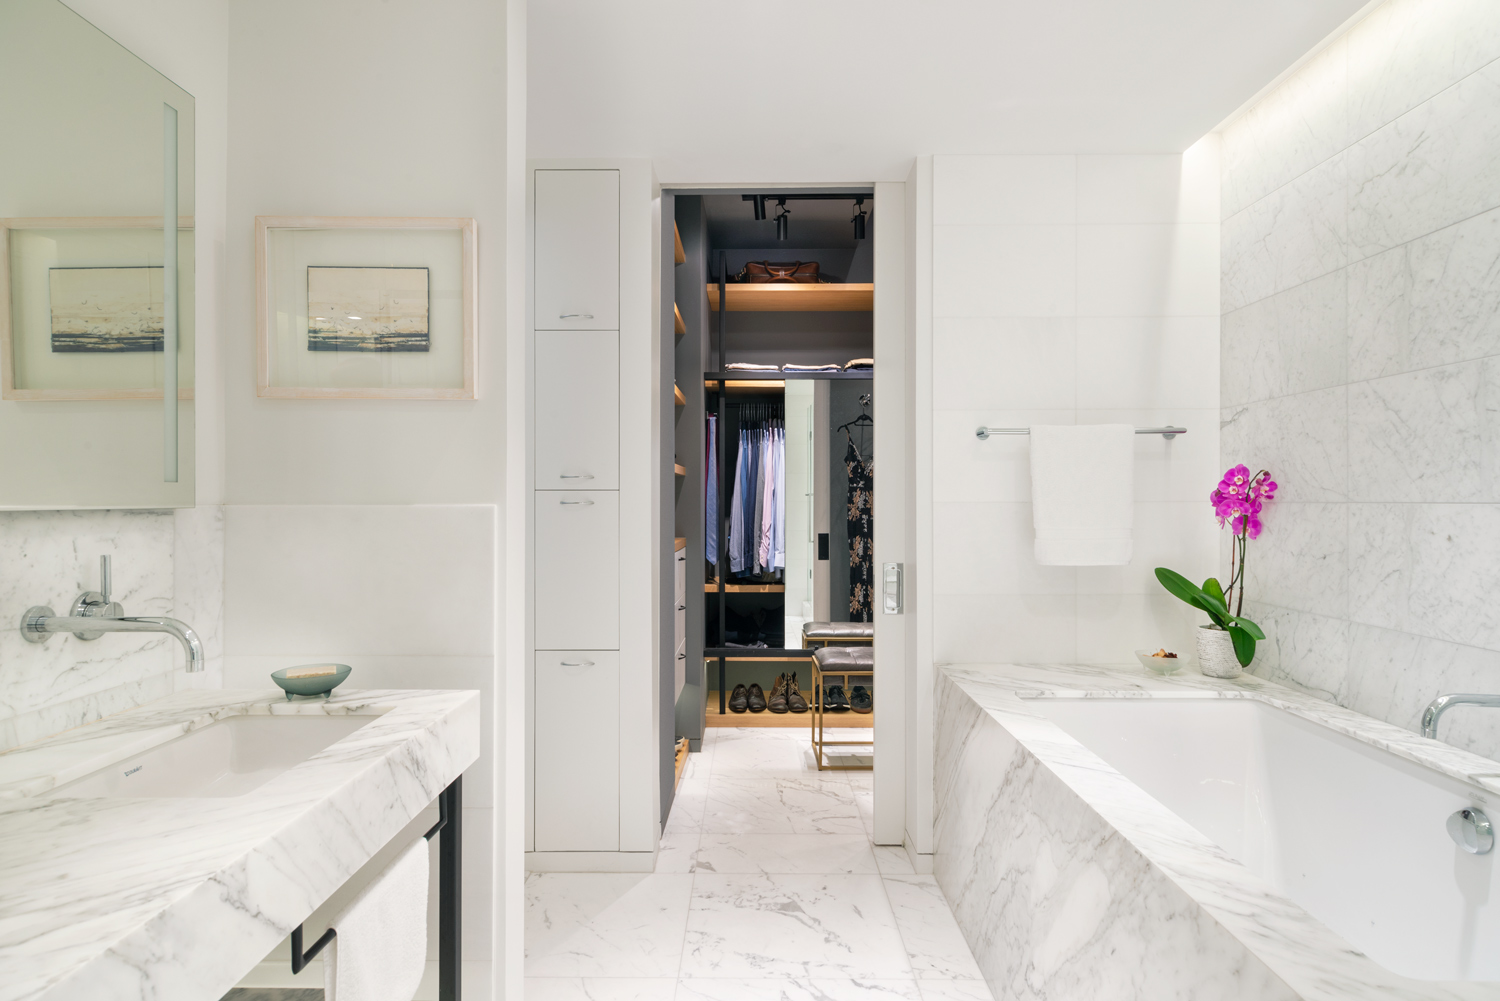 new-york-architect-adi-gershoni-master-bathroom-1.jpg